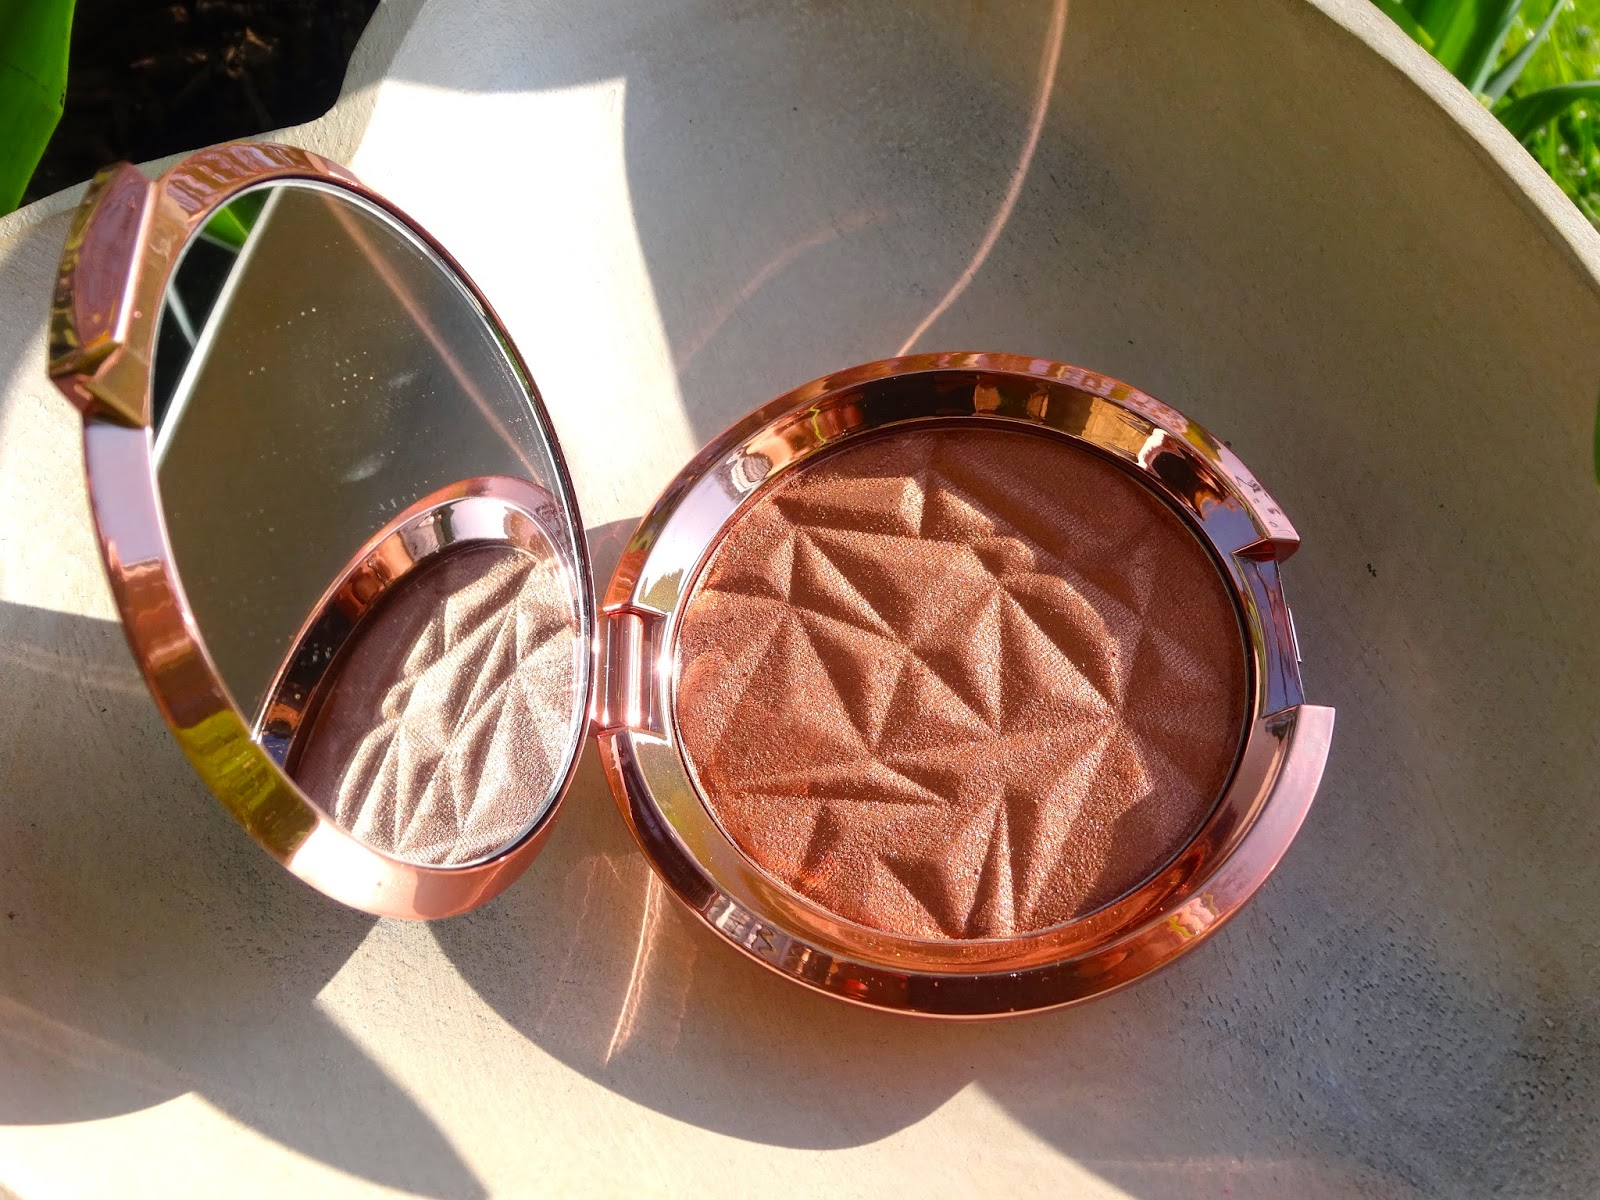 Becca Cosmetics : Limited Edition Shimmering Skin Perfector Pressed Blushed Copper